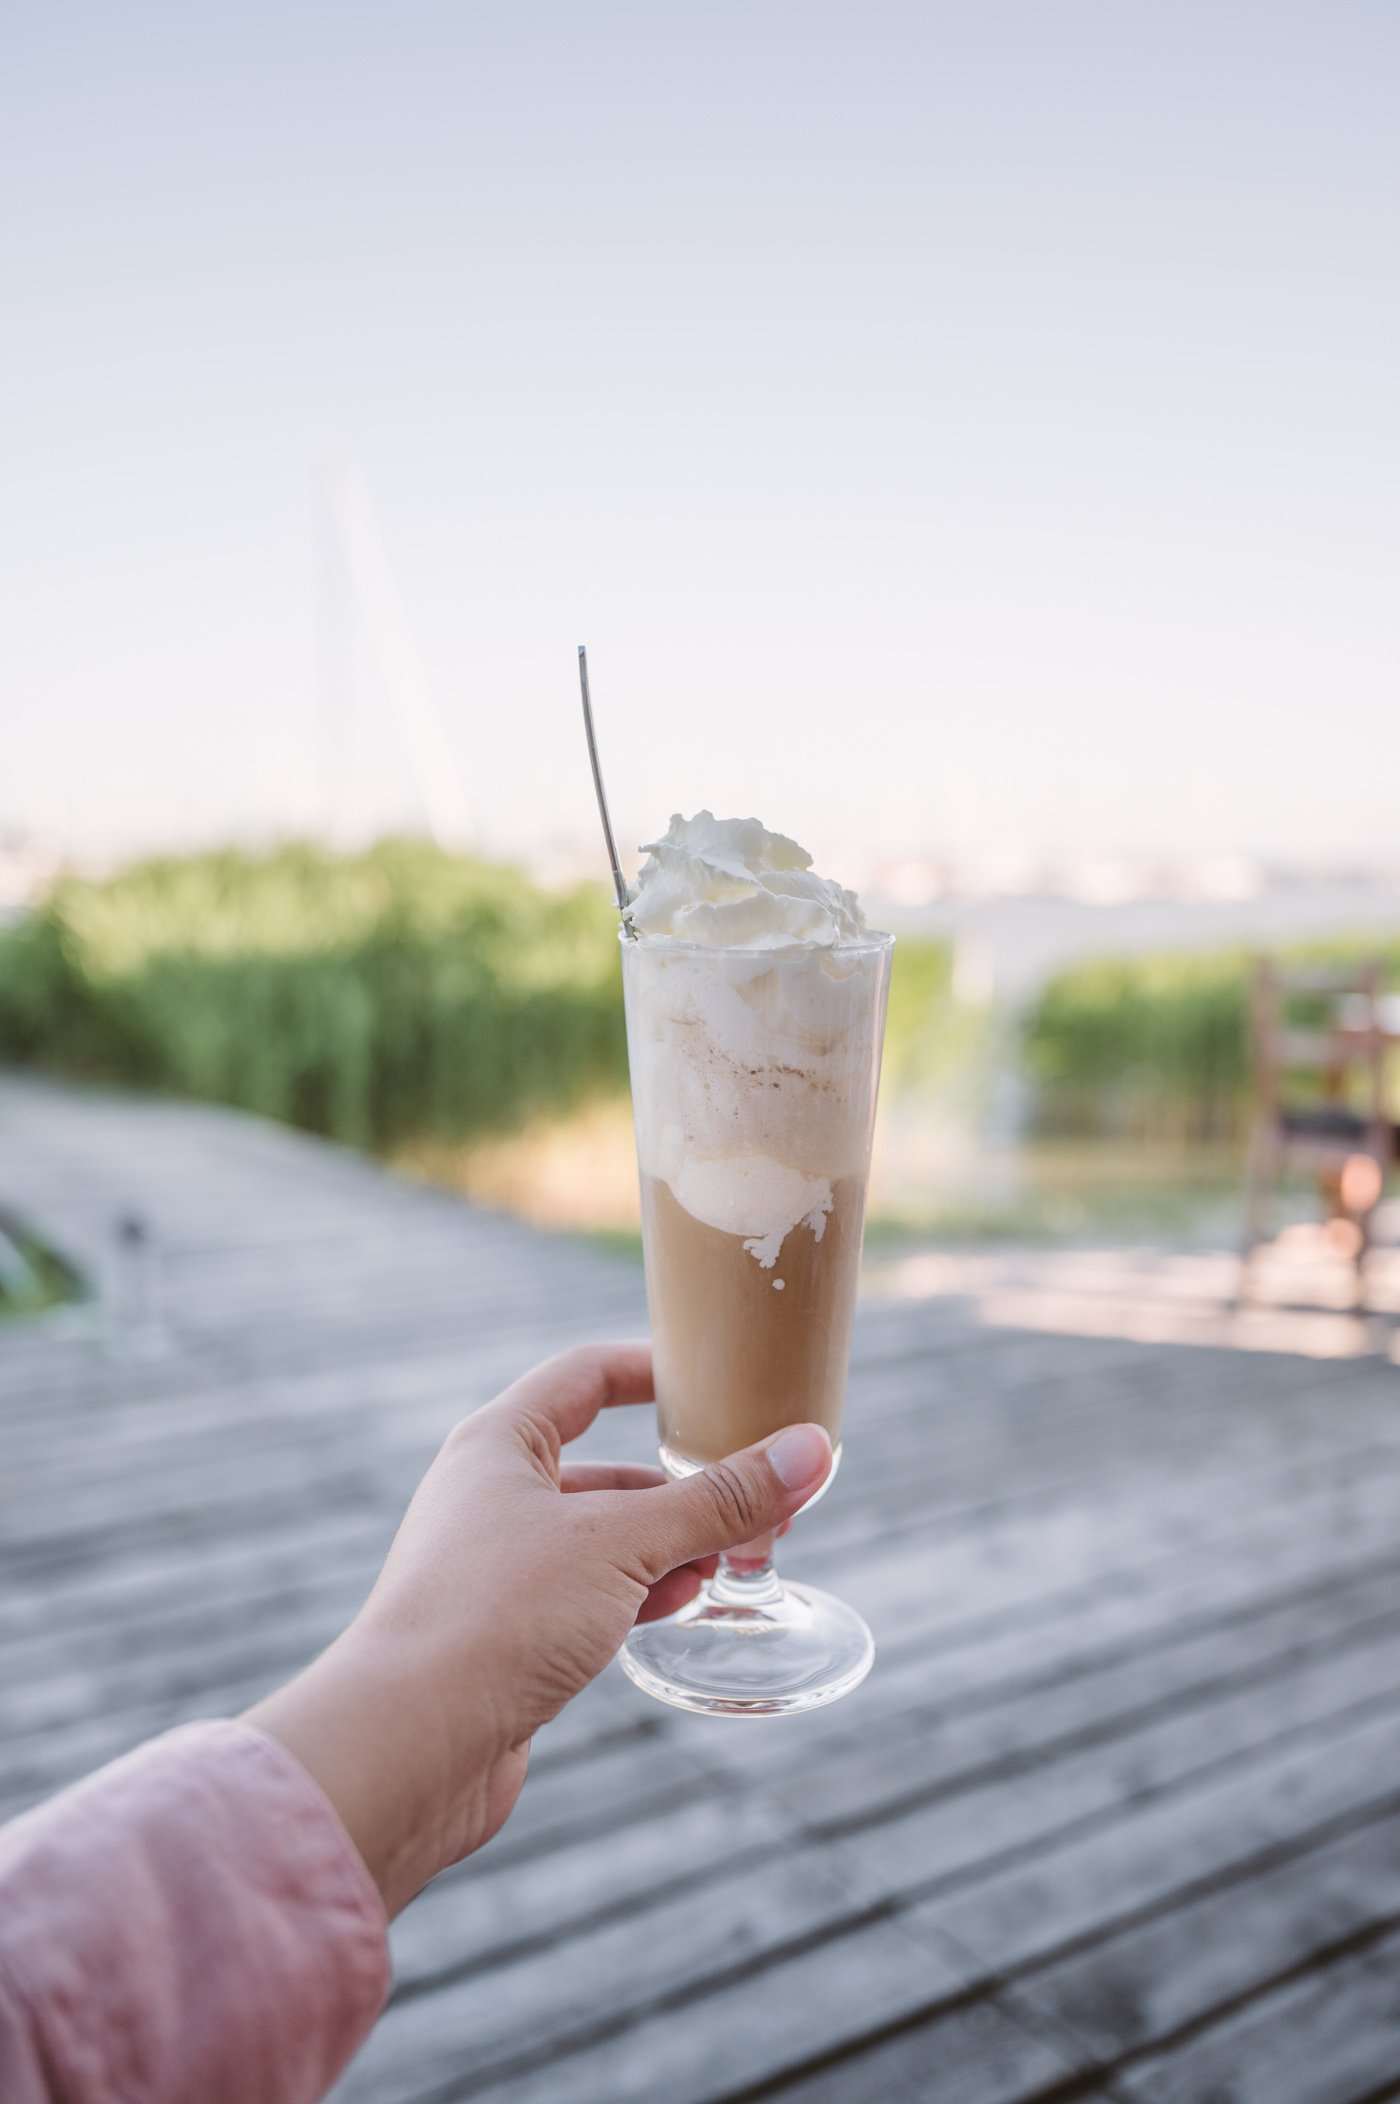 Iced coffee at Seejungfrau restaurant in Jois at Lake Neusiedlersee